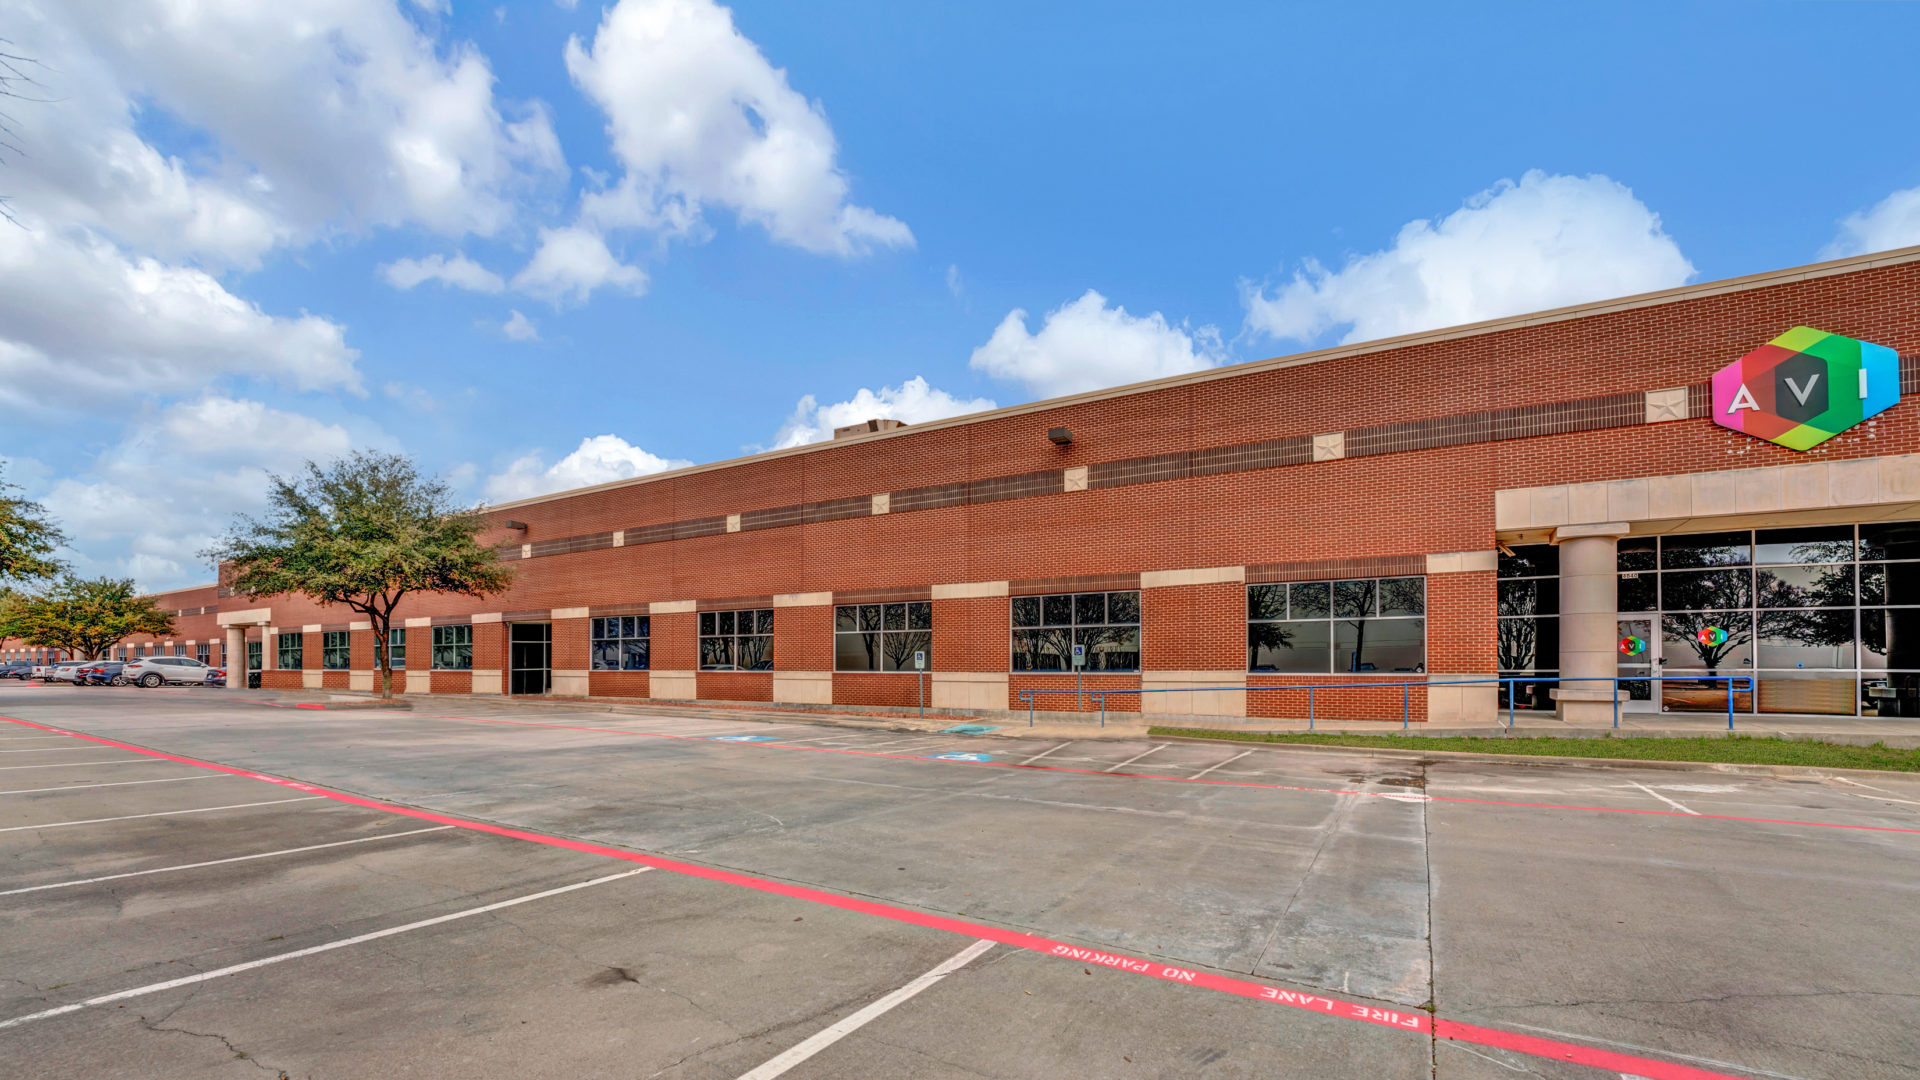 Side view of 4040 Royal Lane showing multiple parking spaces and the front entrance to the building